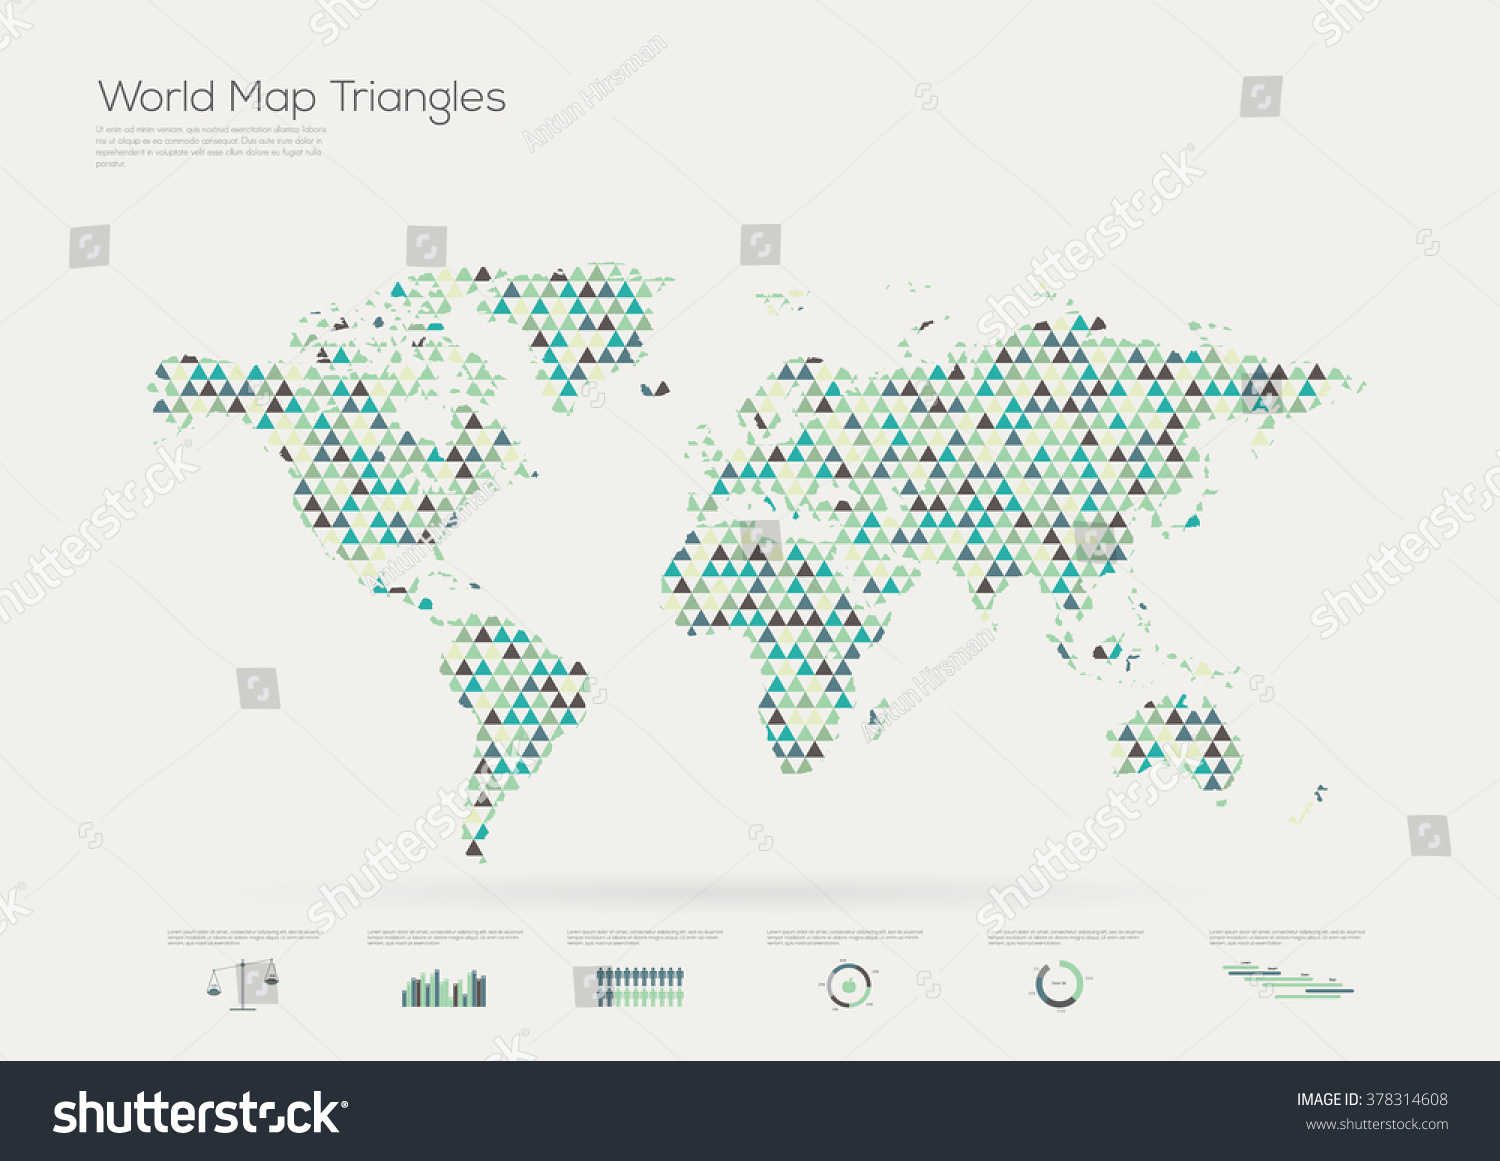 Triangle shape world map infographic vector vectores en stock triangle shape world map infographic vector illustration gumiabroncs Choice Image